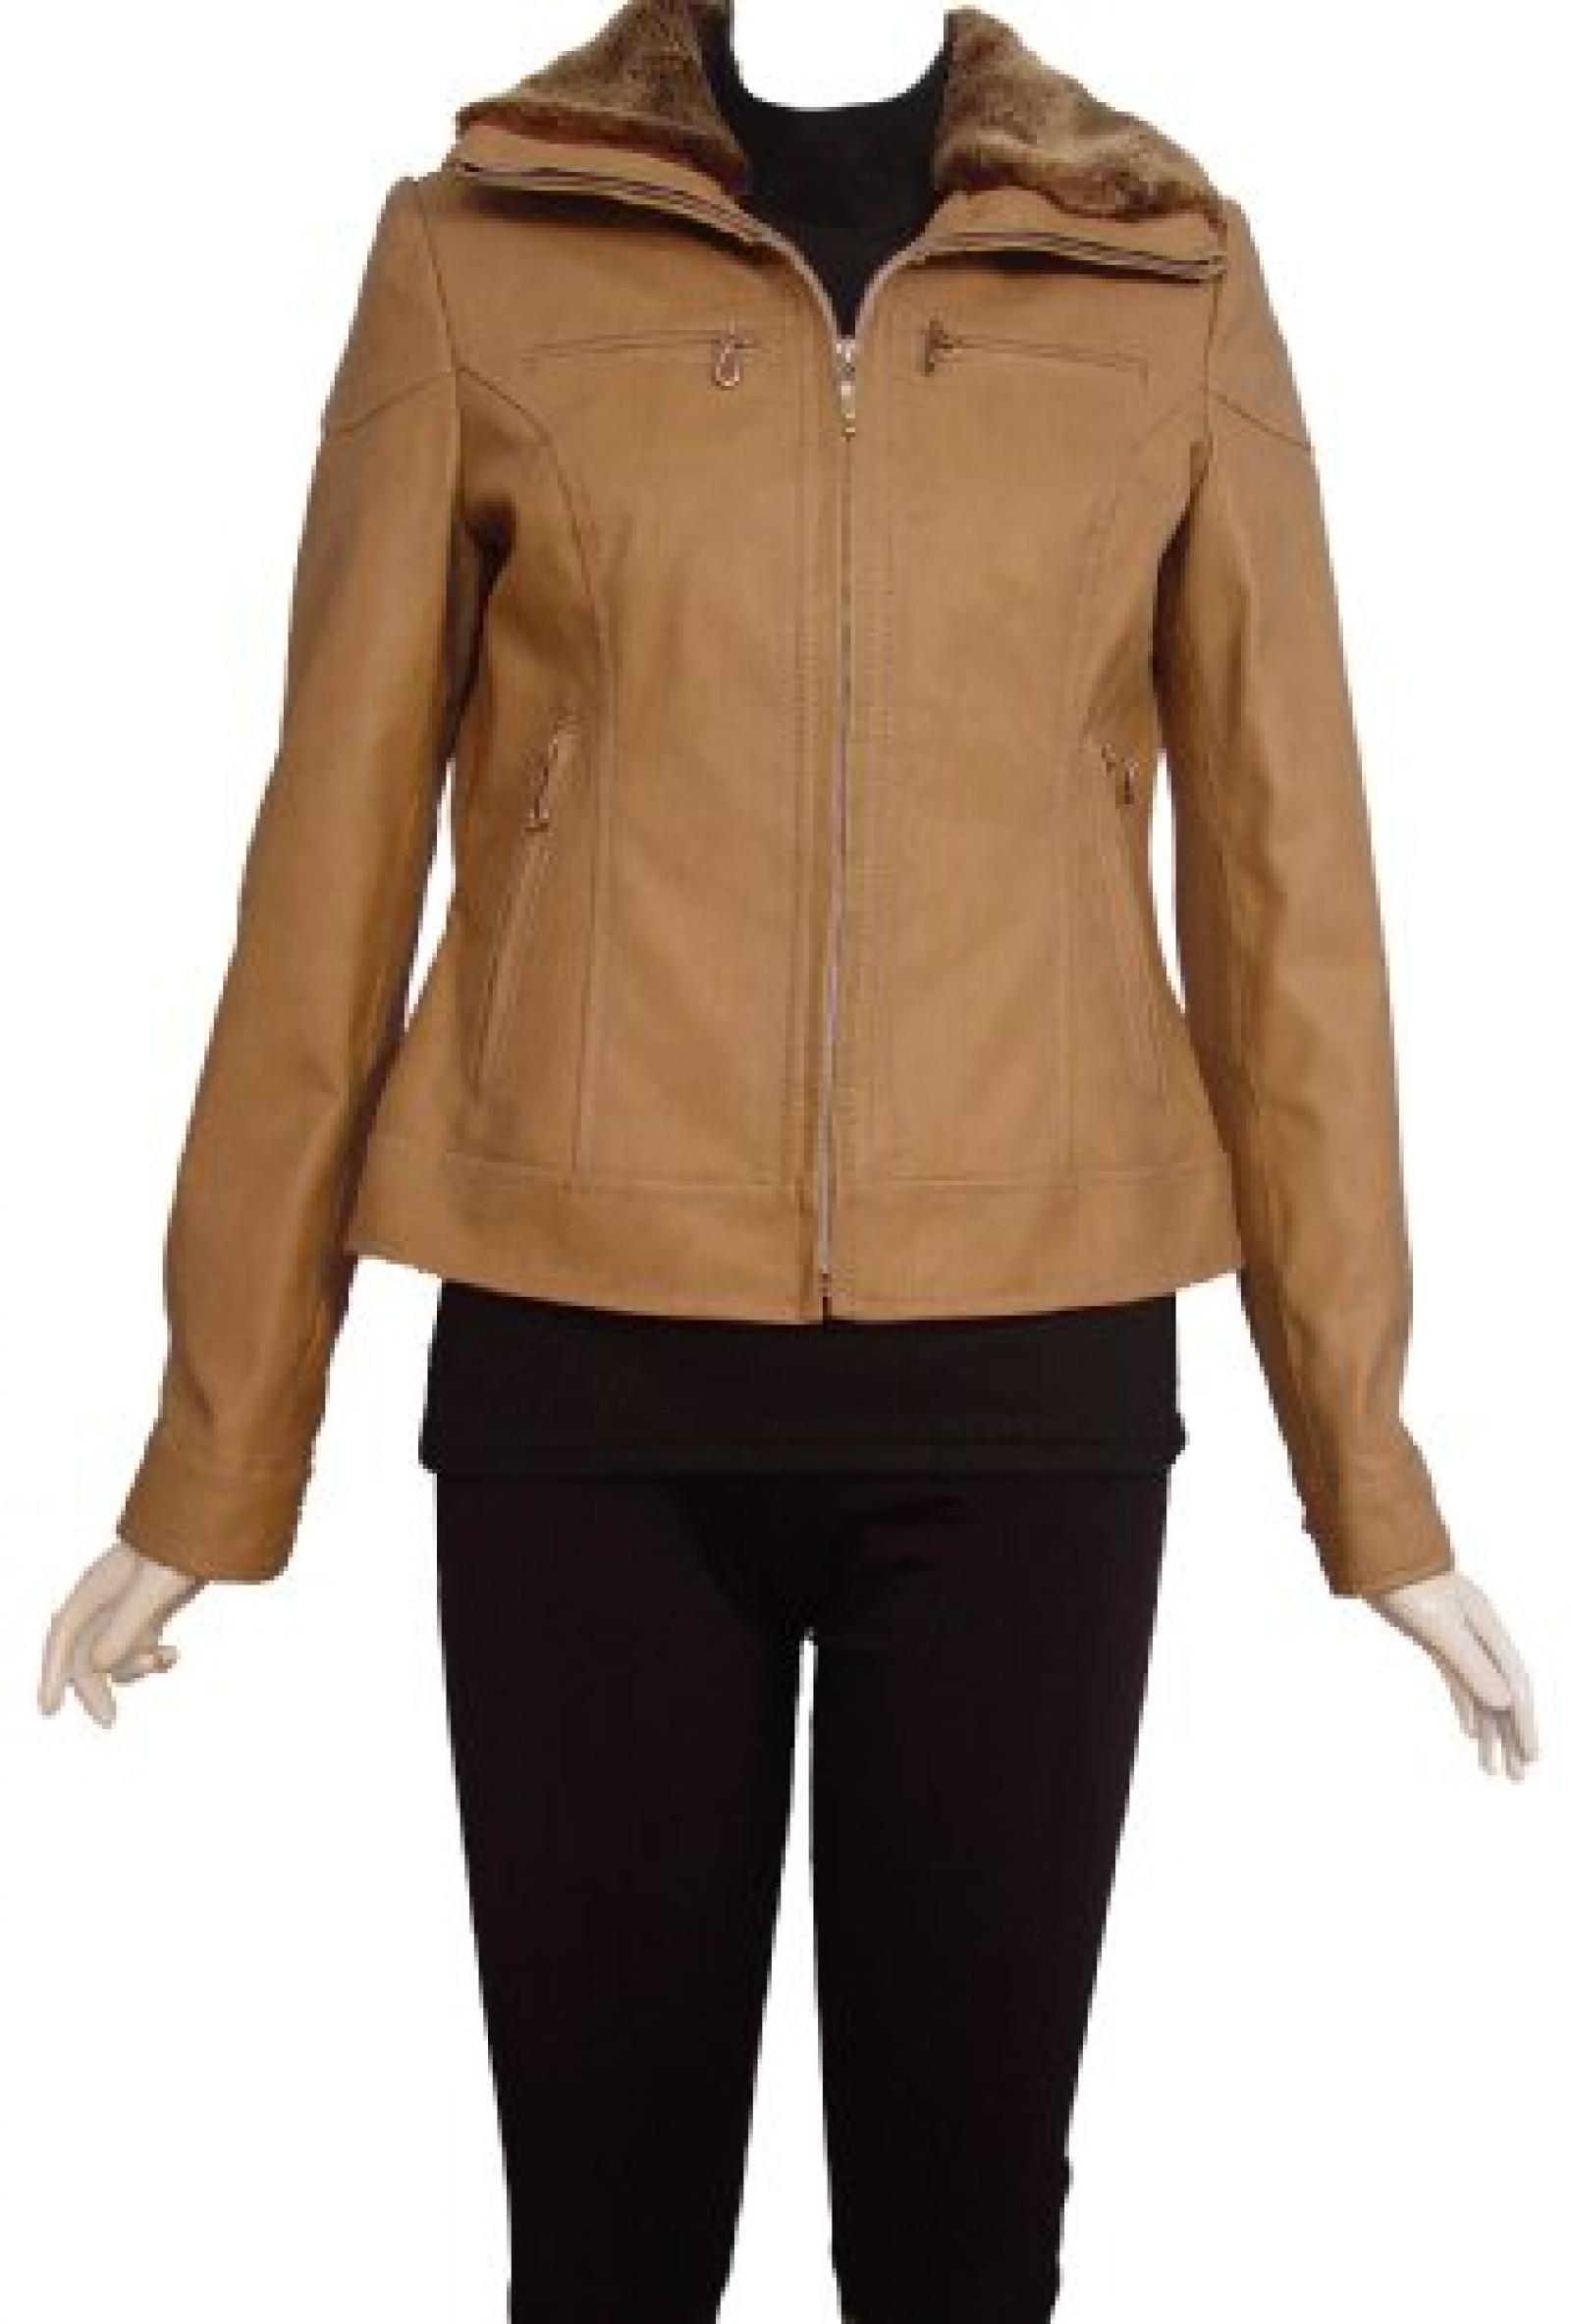 Nettailor Women PLUS SIZE 4088 Lambskin Leather Casual Jacket Faux Fur Collar